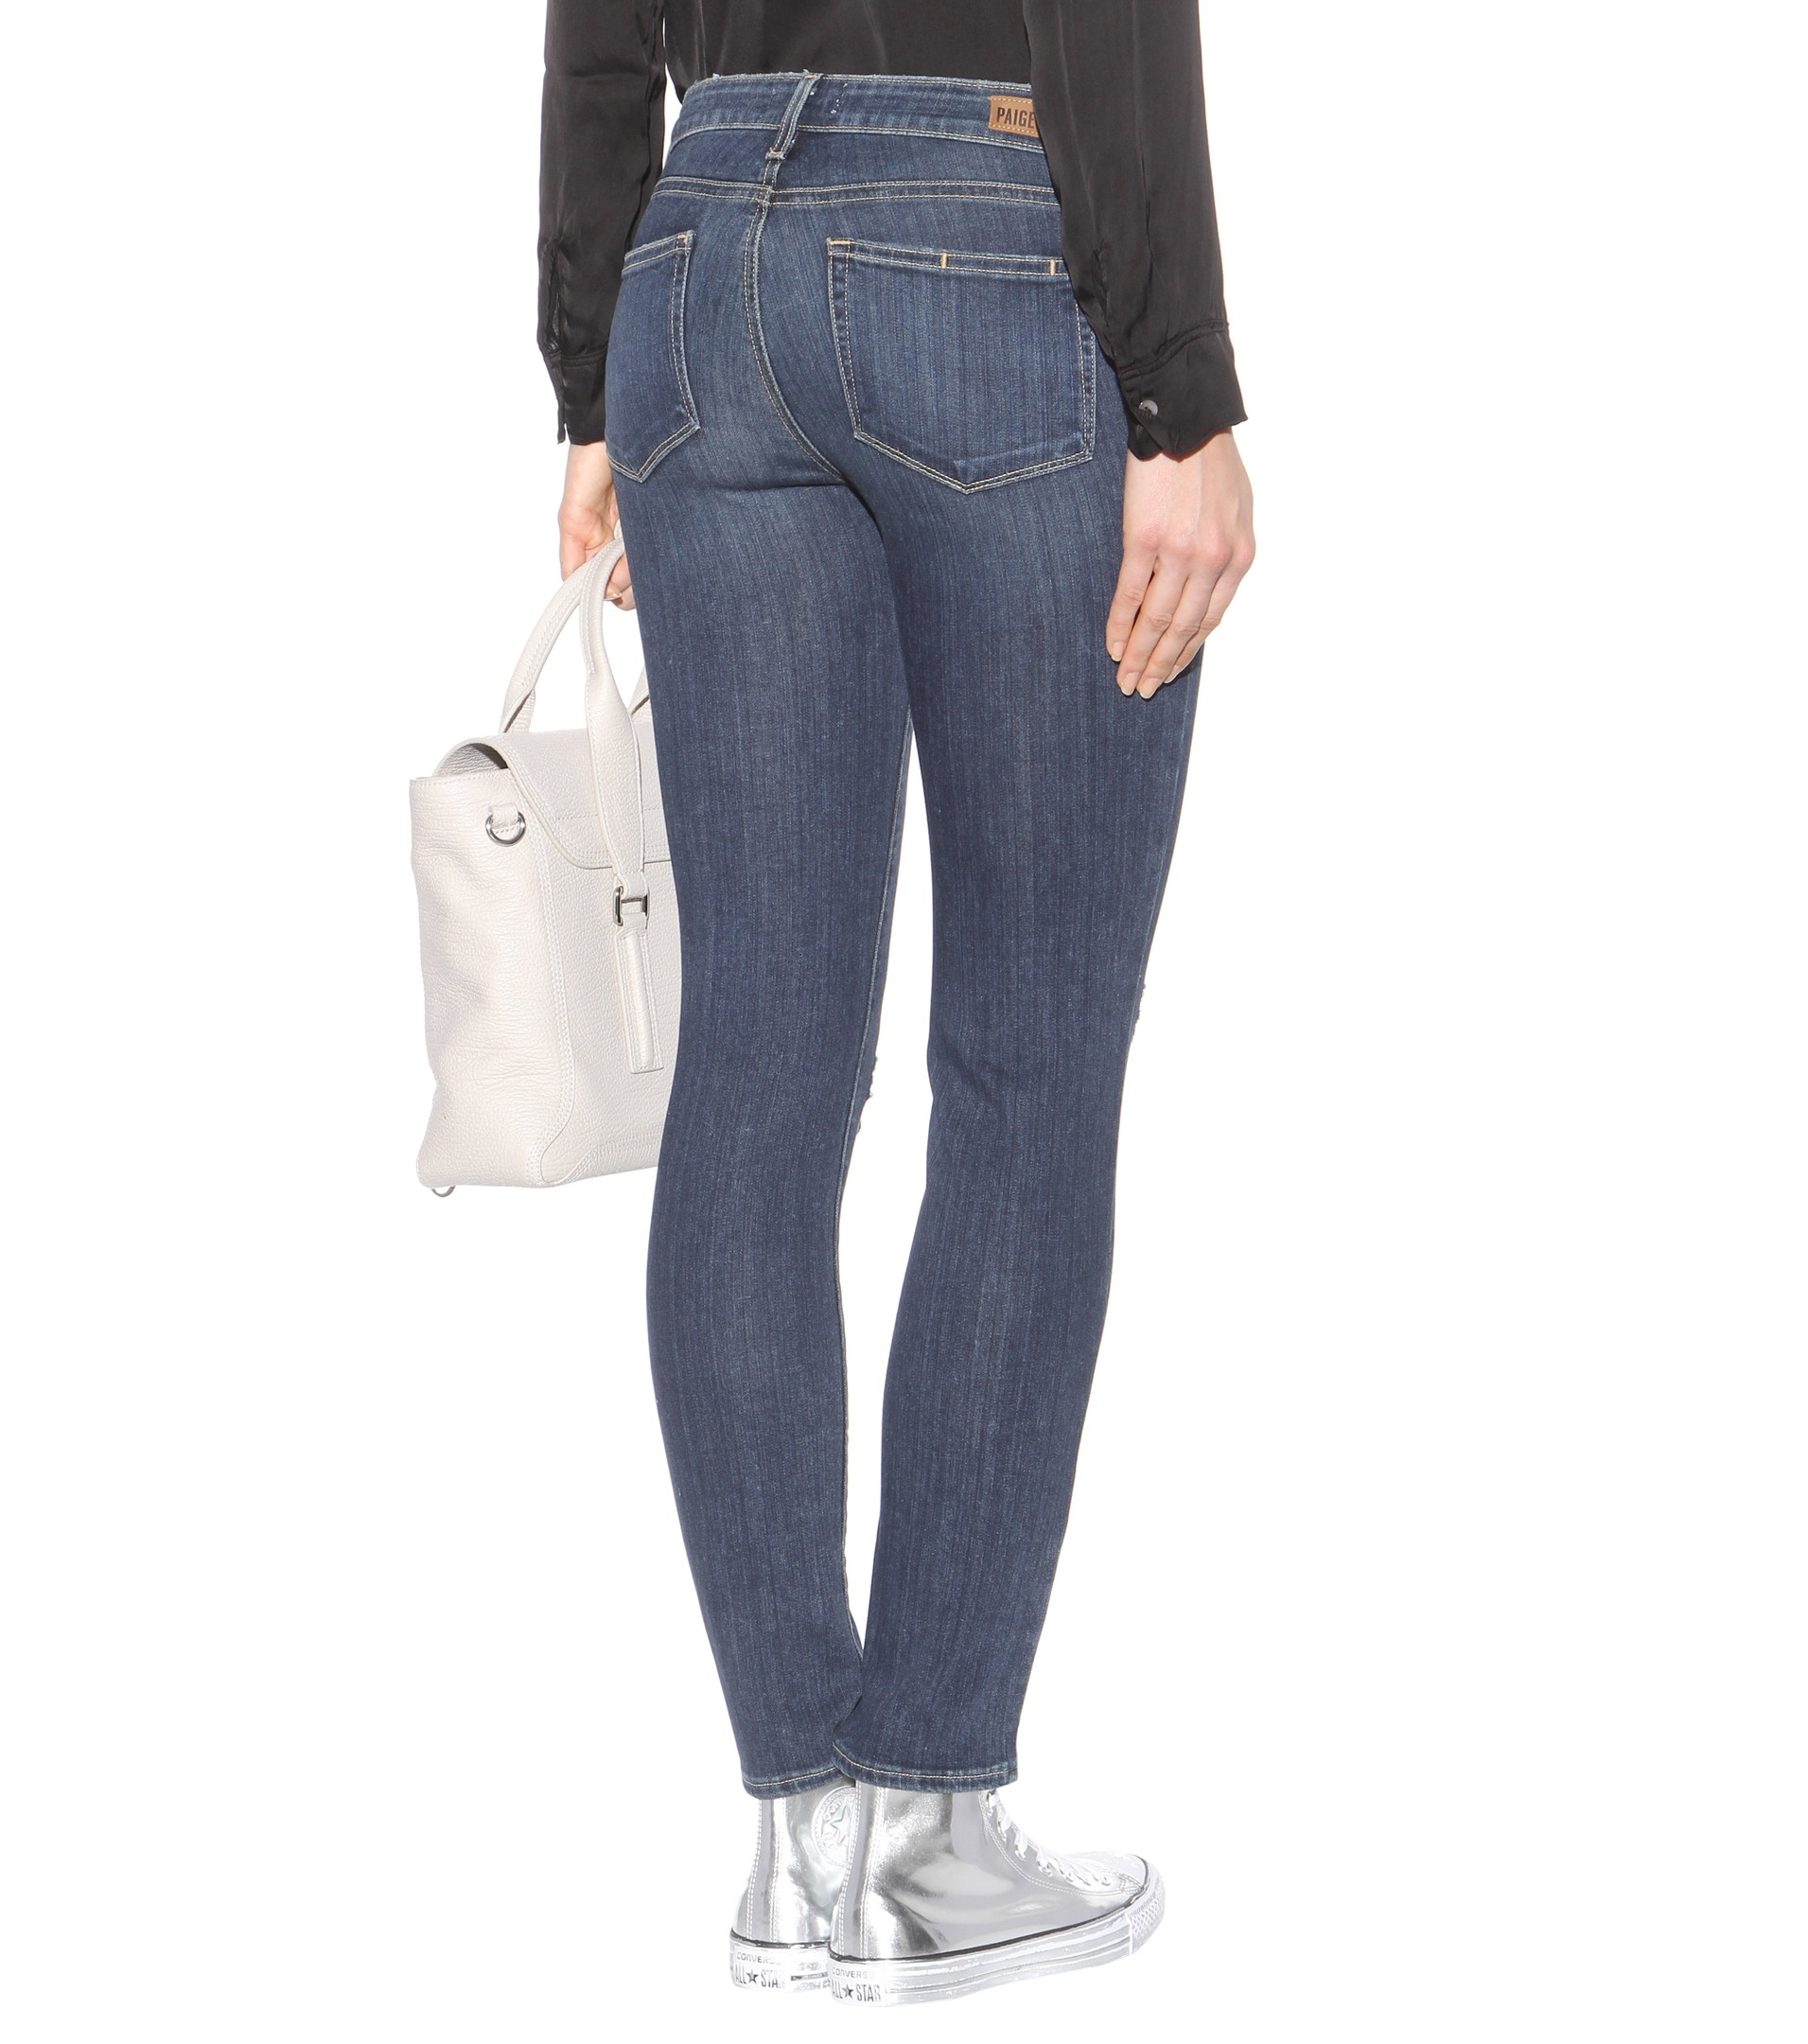 PAIGE Skyline Ankle Peg Mid-rise Skinny Jeans in Blue